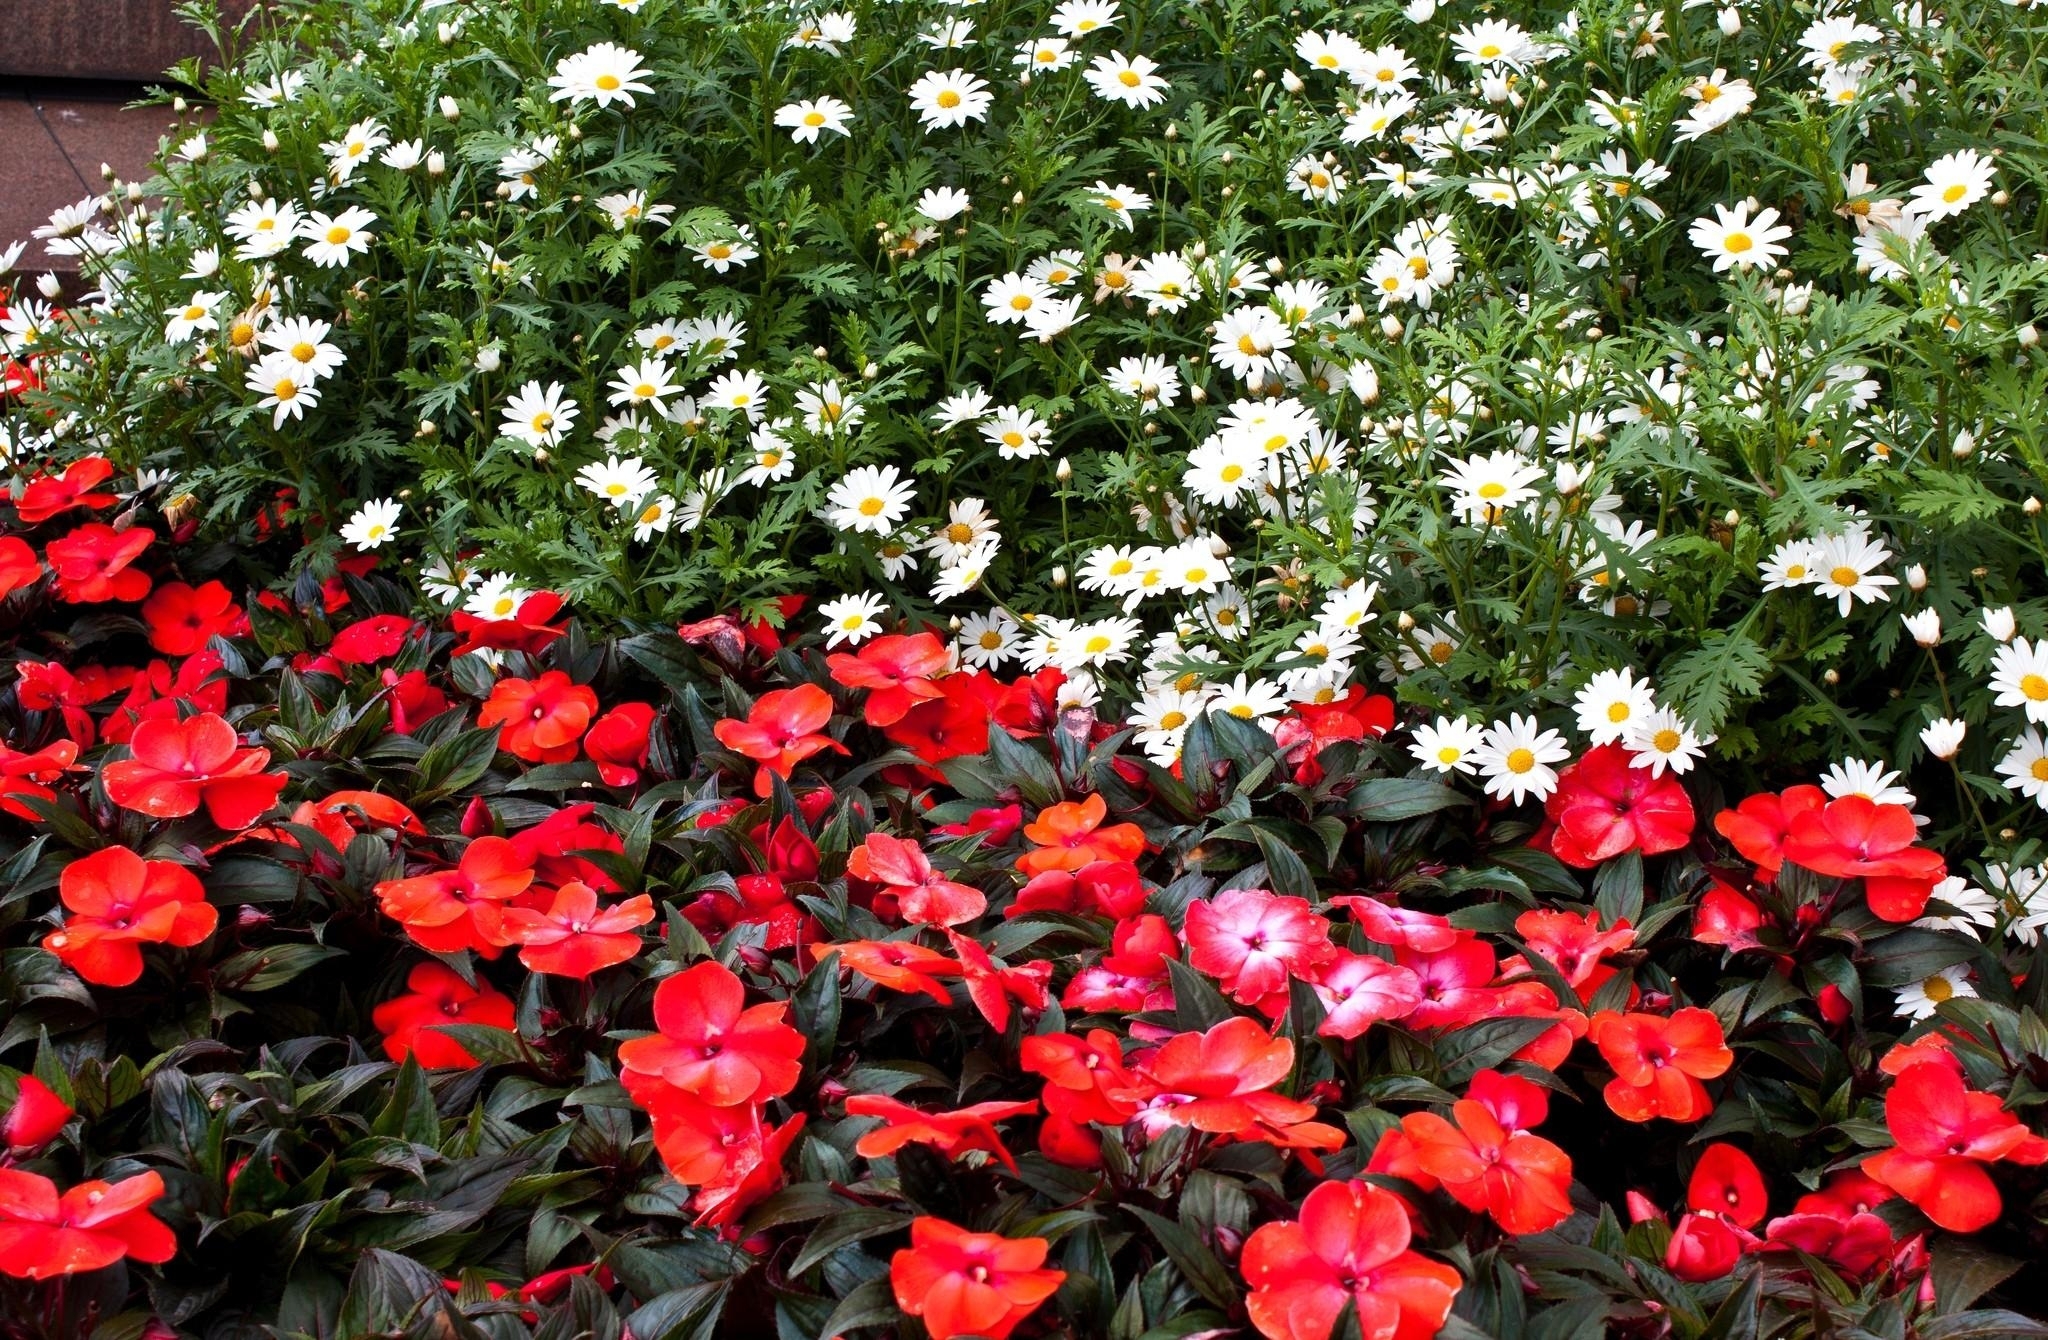 116363 download wallpaper Flowers, Camomile, Balsams, Balsamins, Flower Bed, Flowerbed screensavers and pictures for free